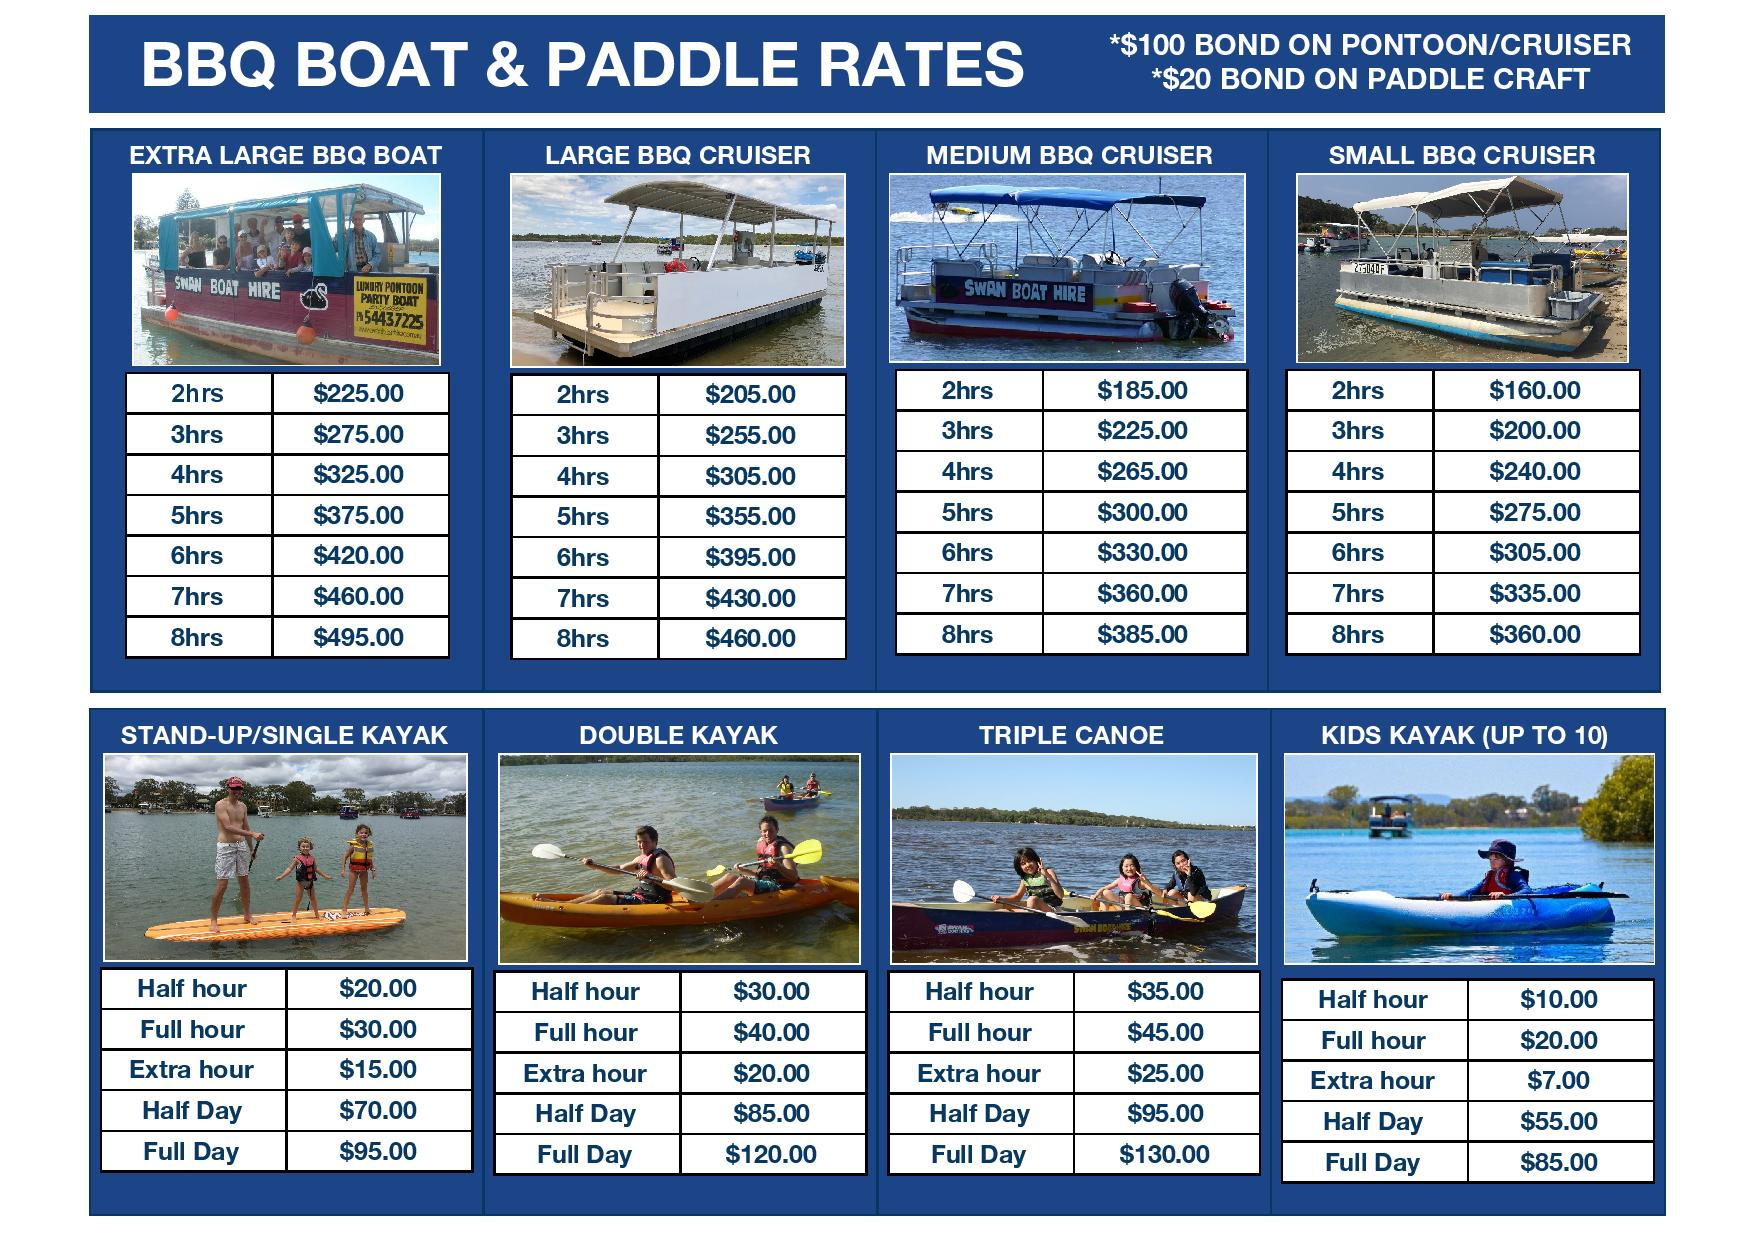 BOAT HIRE RATES 2019